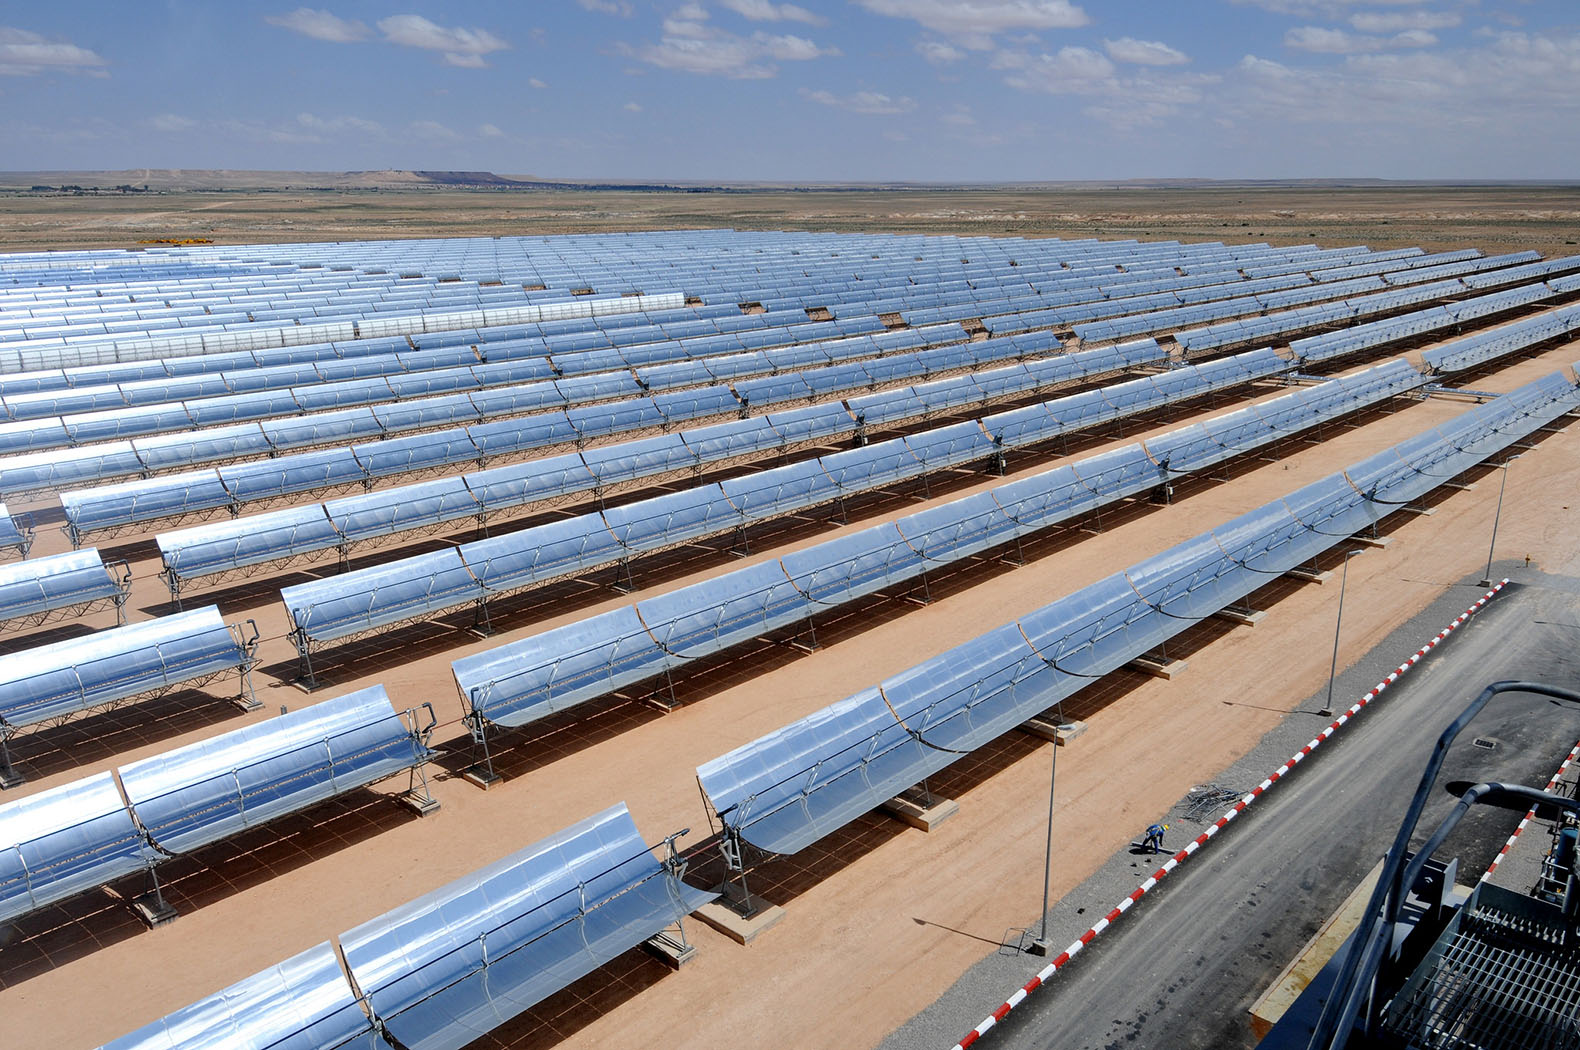 Morocco switches on phase one of the world's largest solar plant